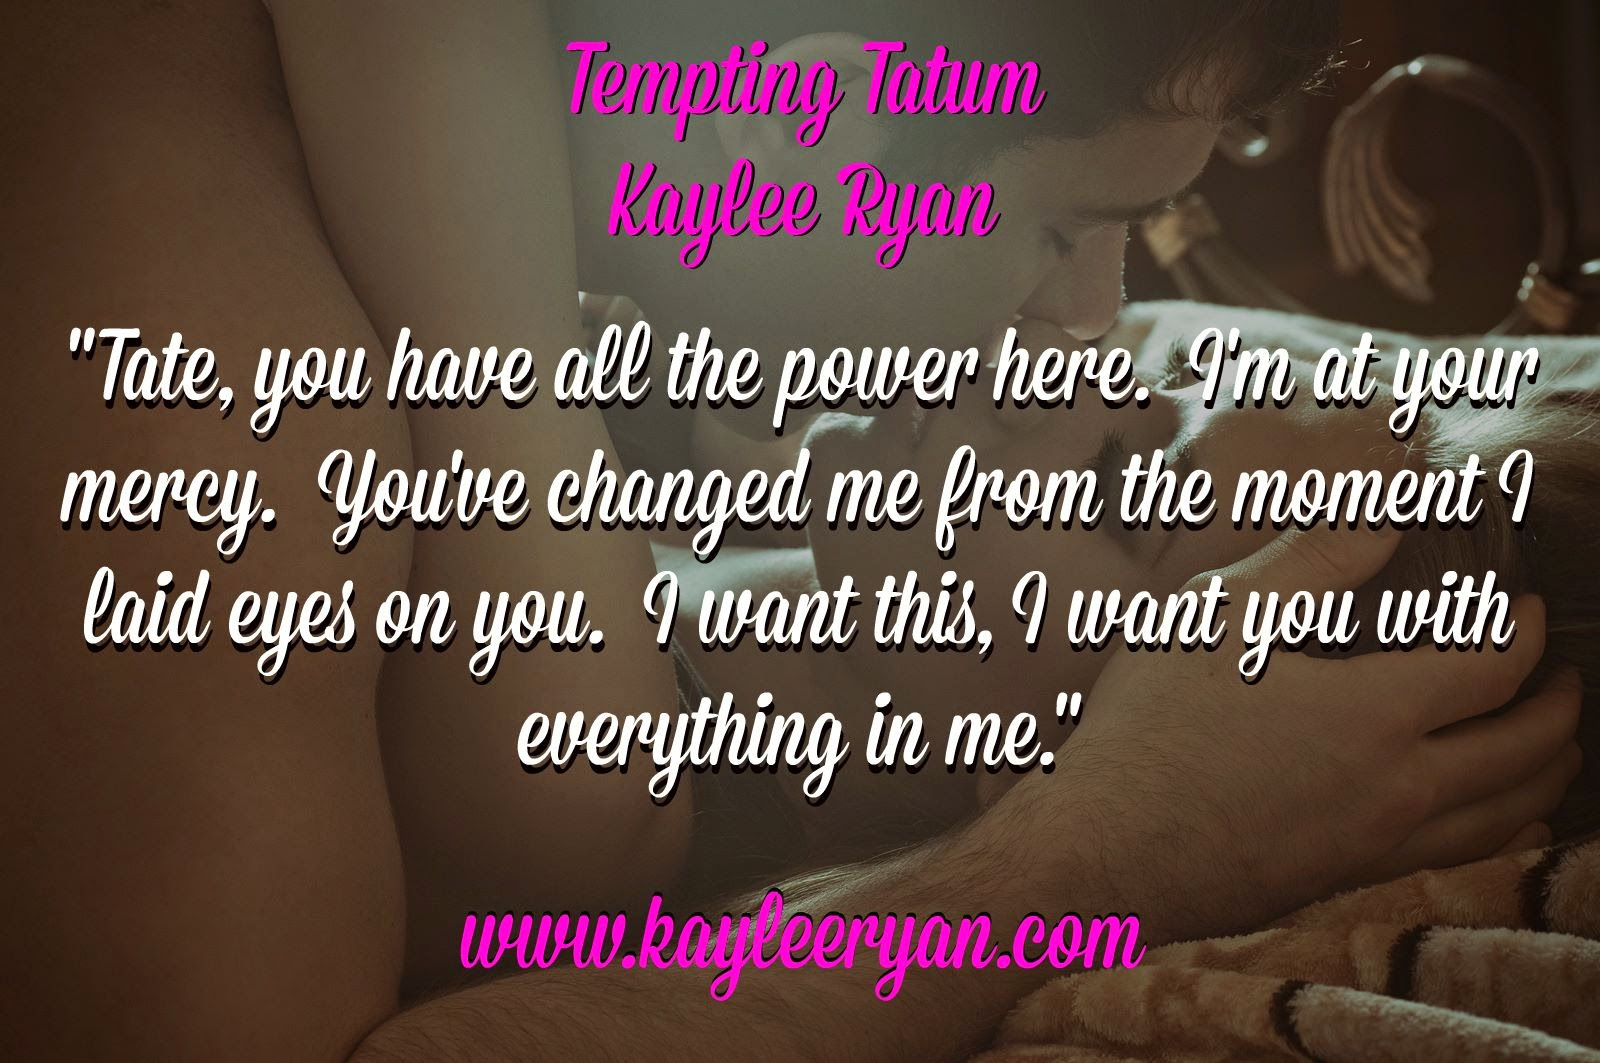 http://www.amazon.com/Tempting-Tatum-Kaylee-Ryan-ebook/dp/B00LLI4V82/ref=as_sl_pc_tf_til?tag=ilolapo-20&linkCode=w00&linkId=VOZNM55RAS2G677S&creativeASIN=B00LLI4V82